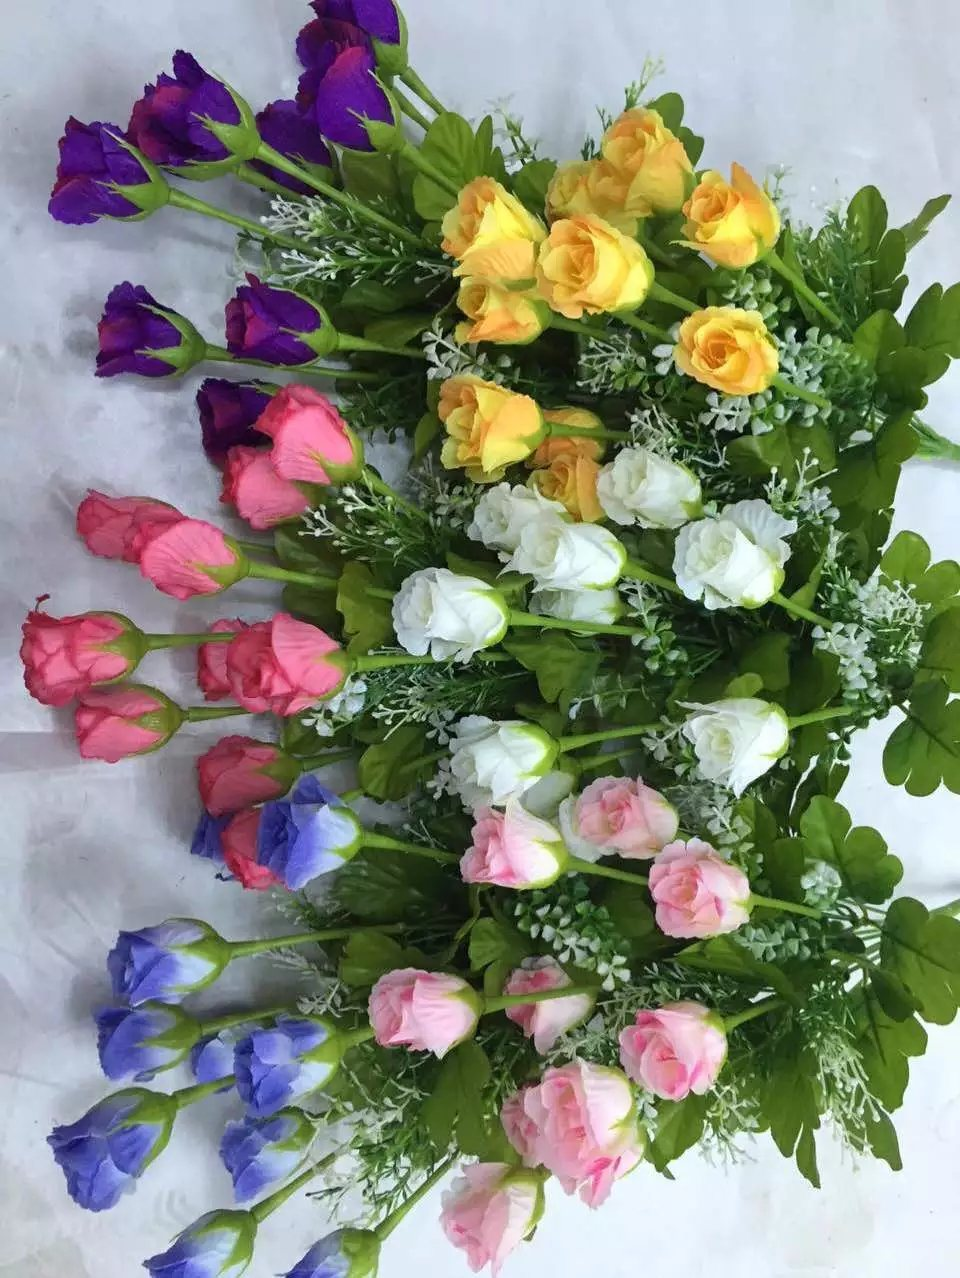 High Quality of Artificial Flowers Rose Bush of Gu-Jy912204343